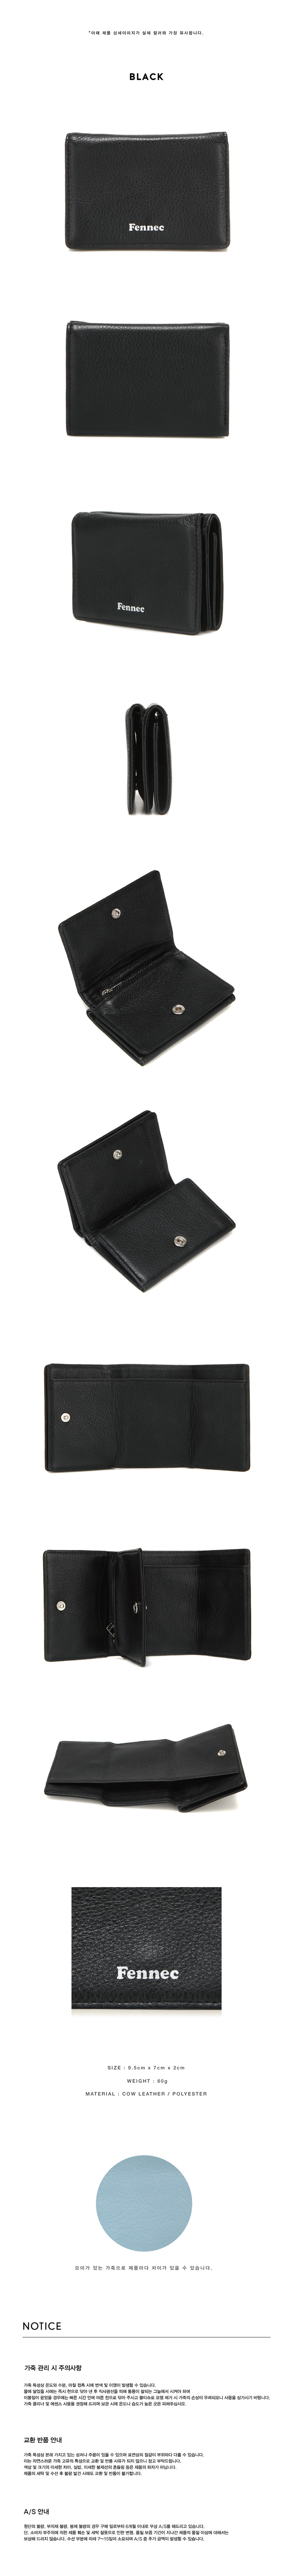 soft-mini-wallet-black.jpg